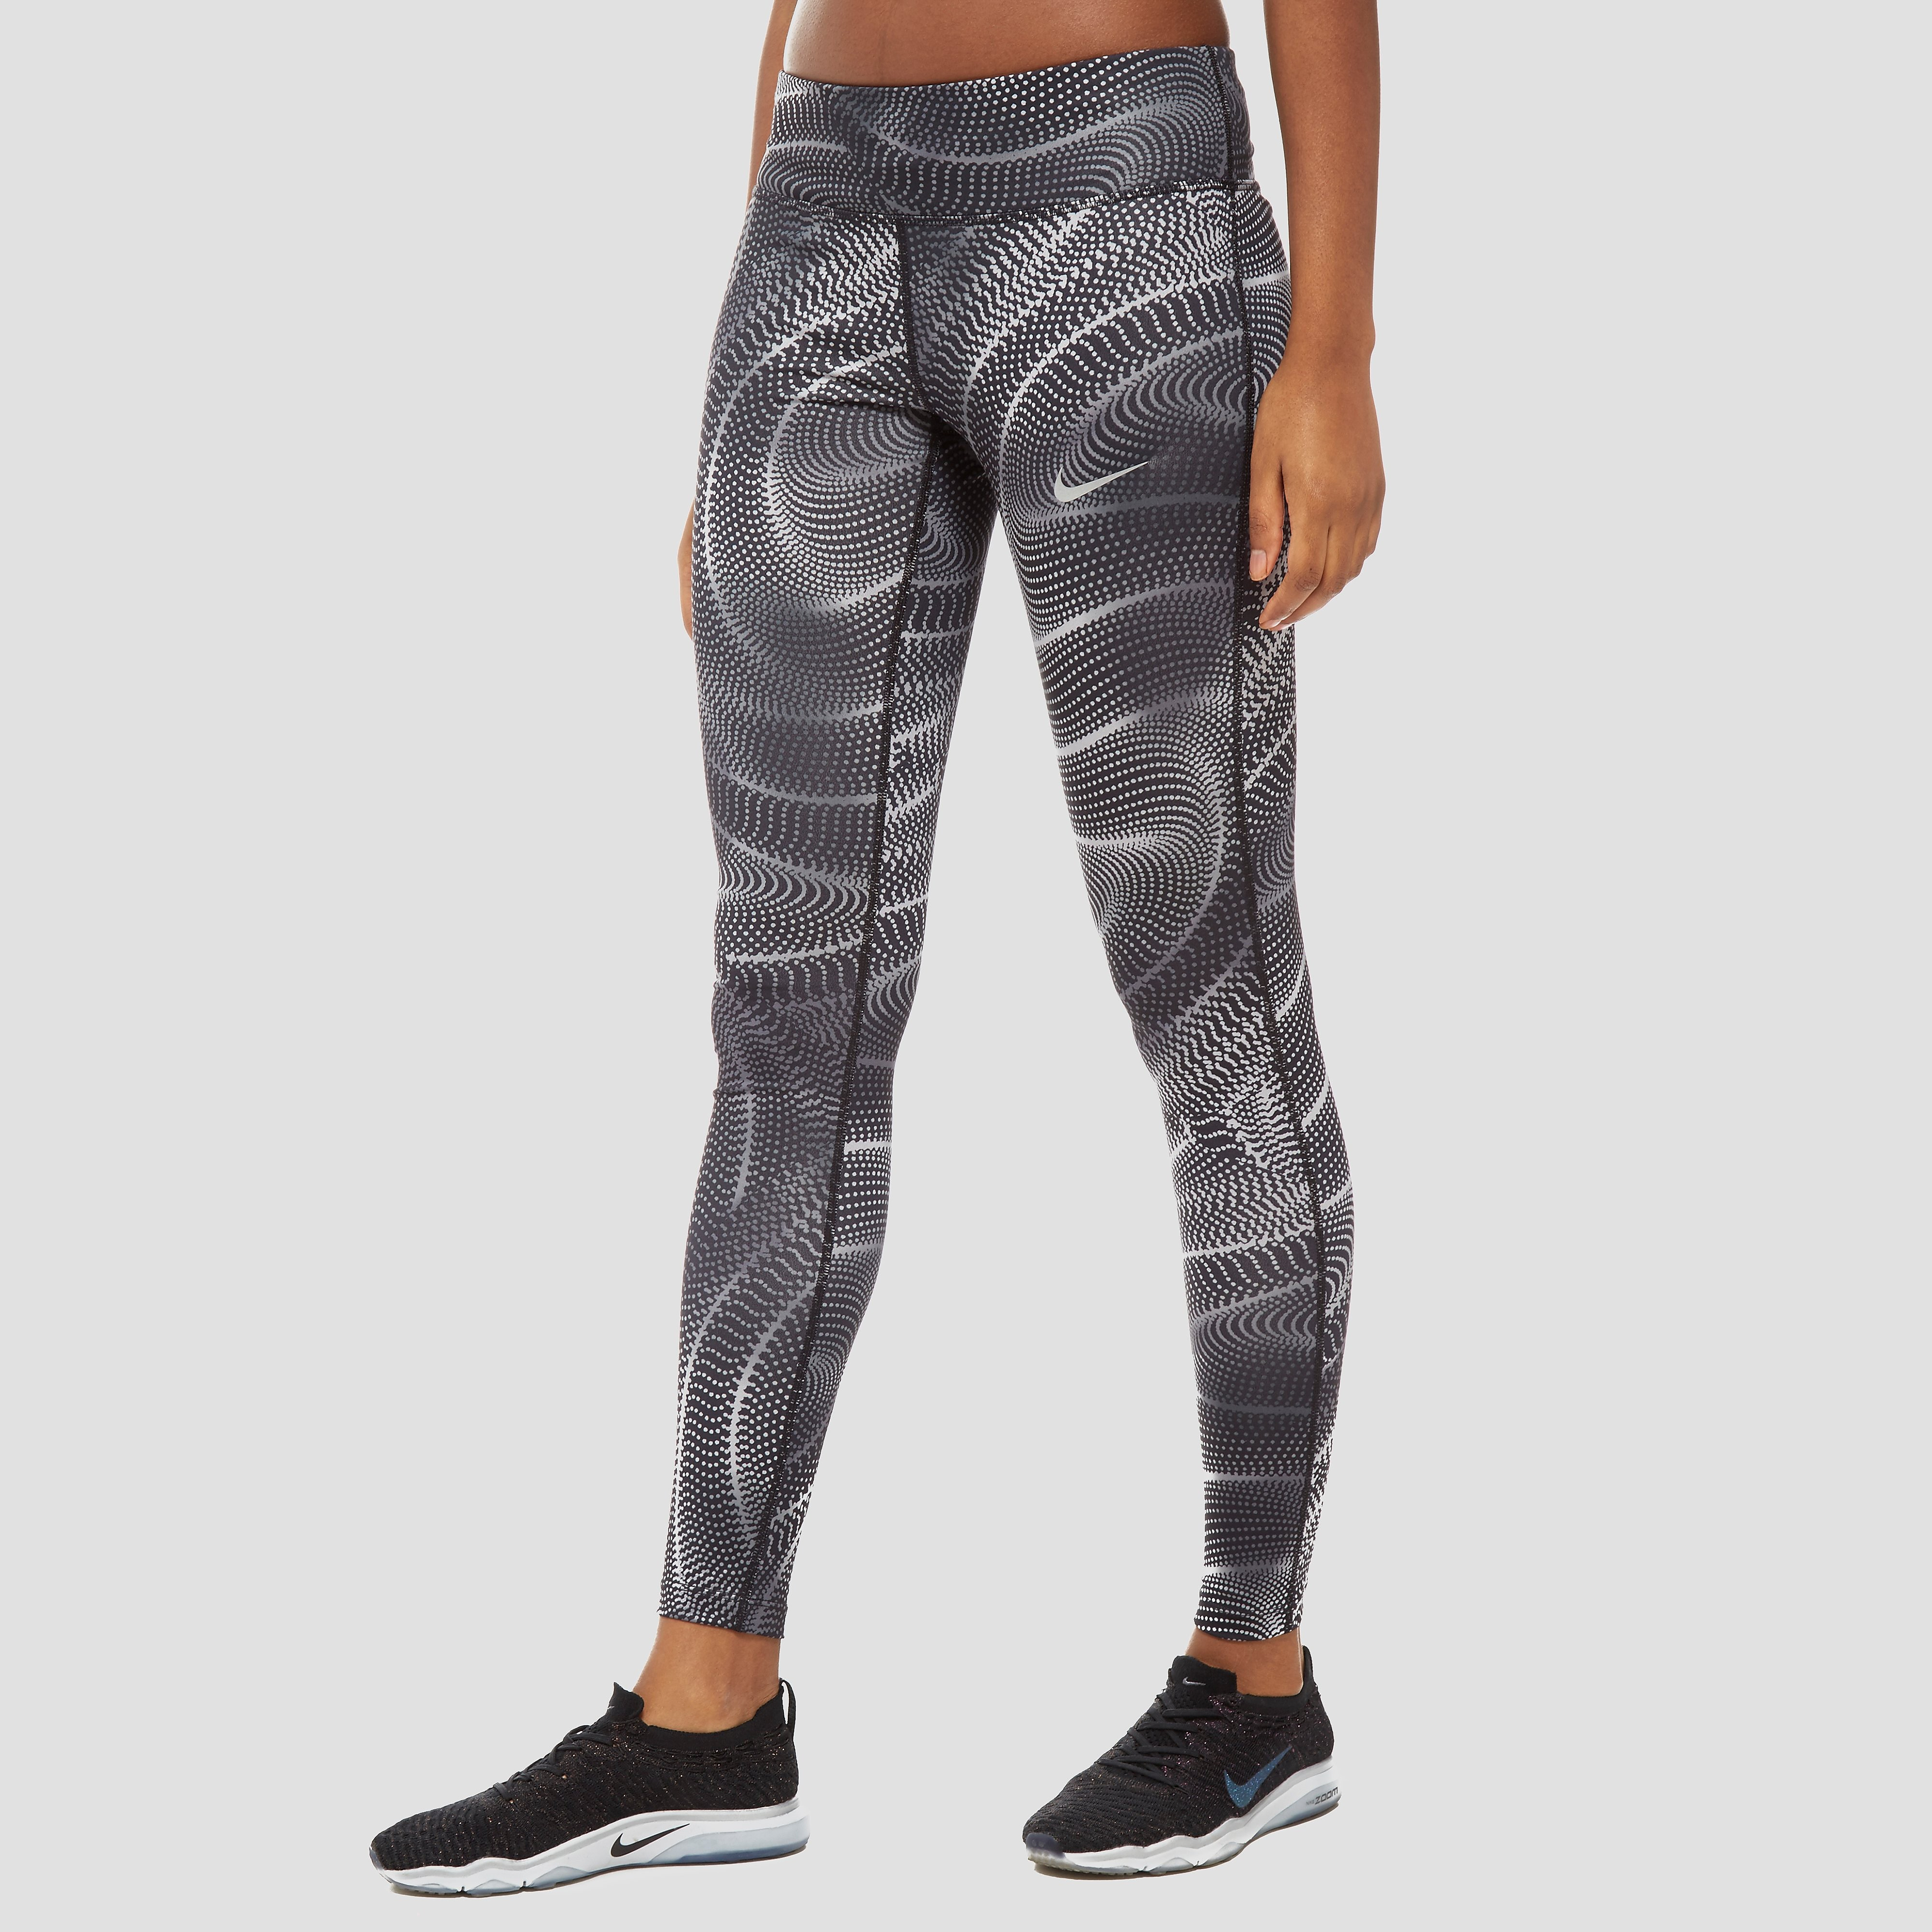 Nike Women's Running Essential Printed Tights